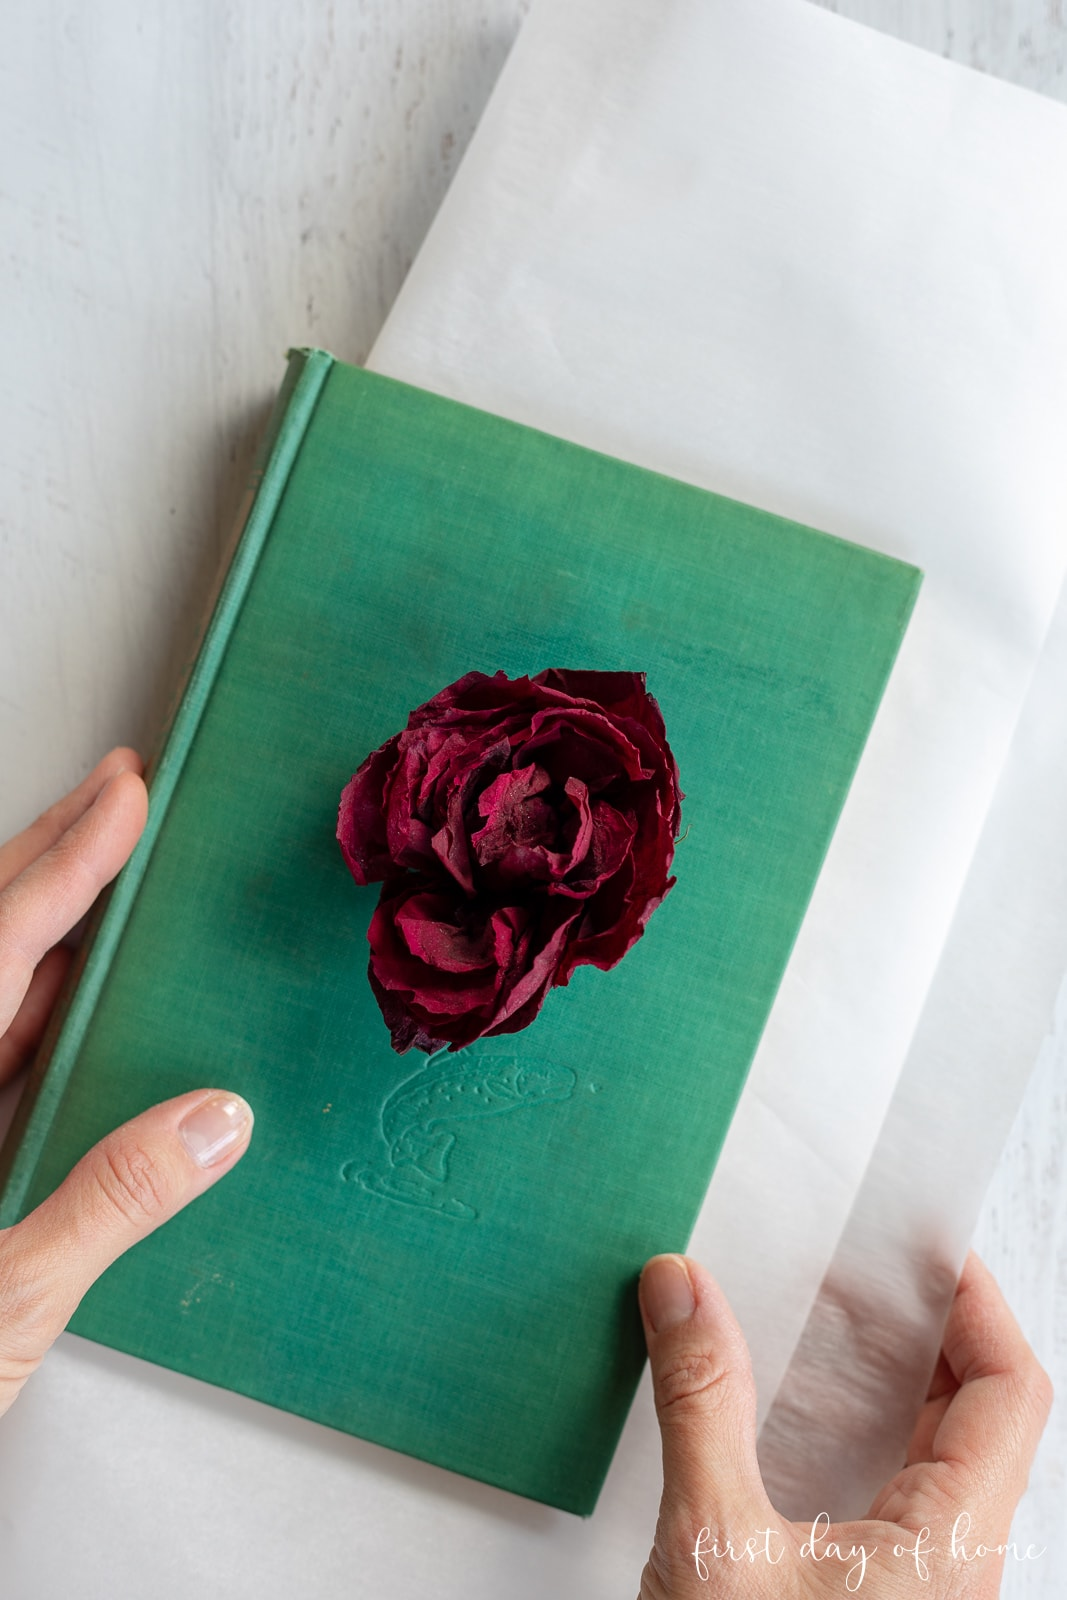 Pressing flowers in a book showing dried rose on top